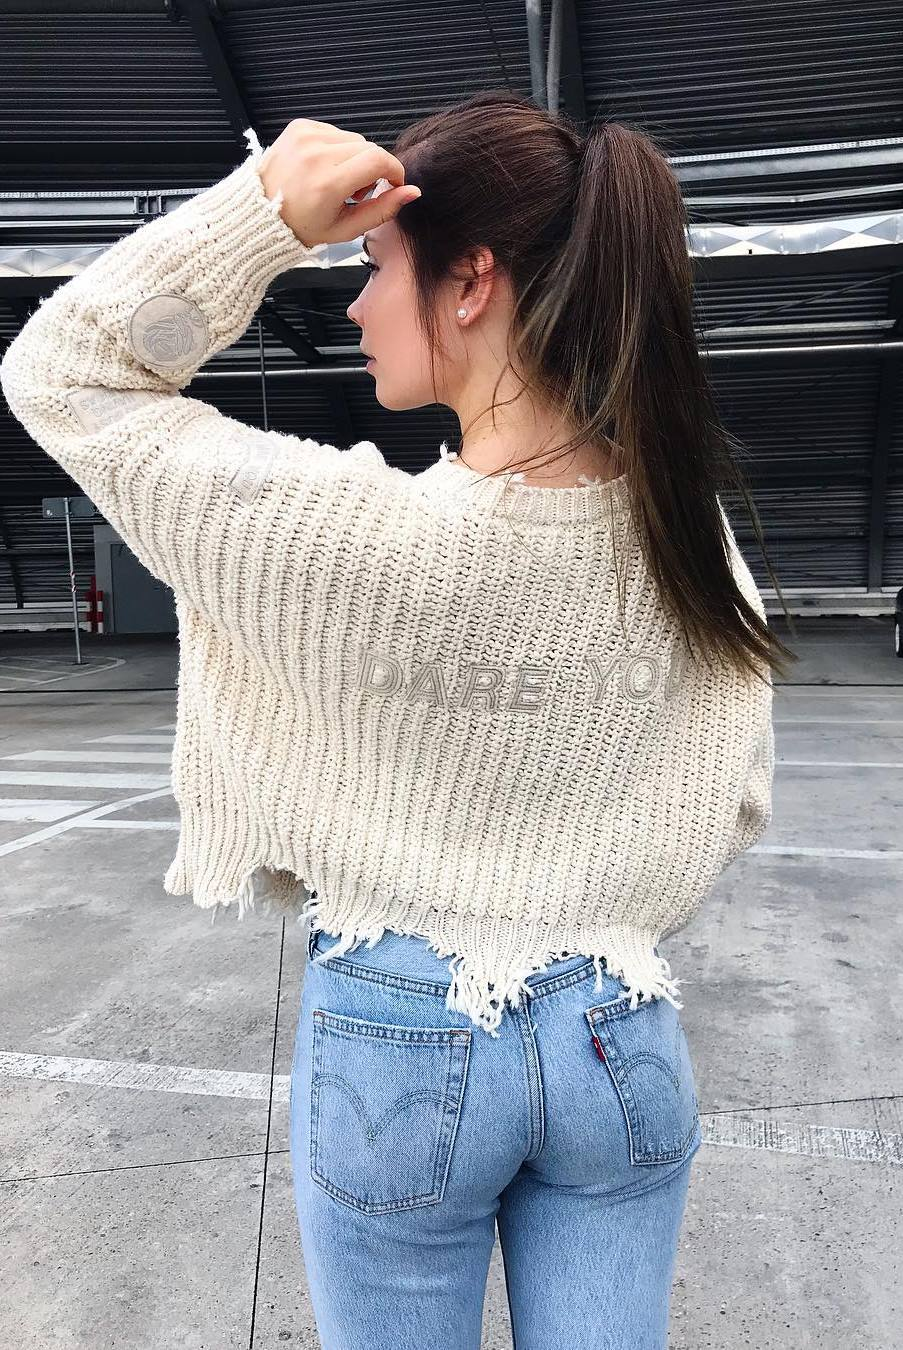 ootd | knit sweater and jeans